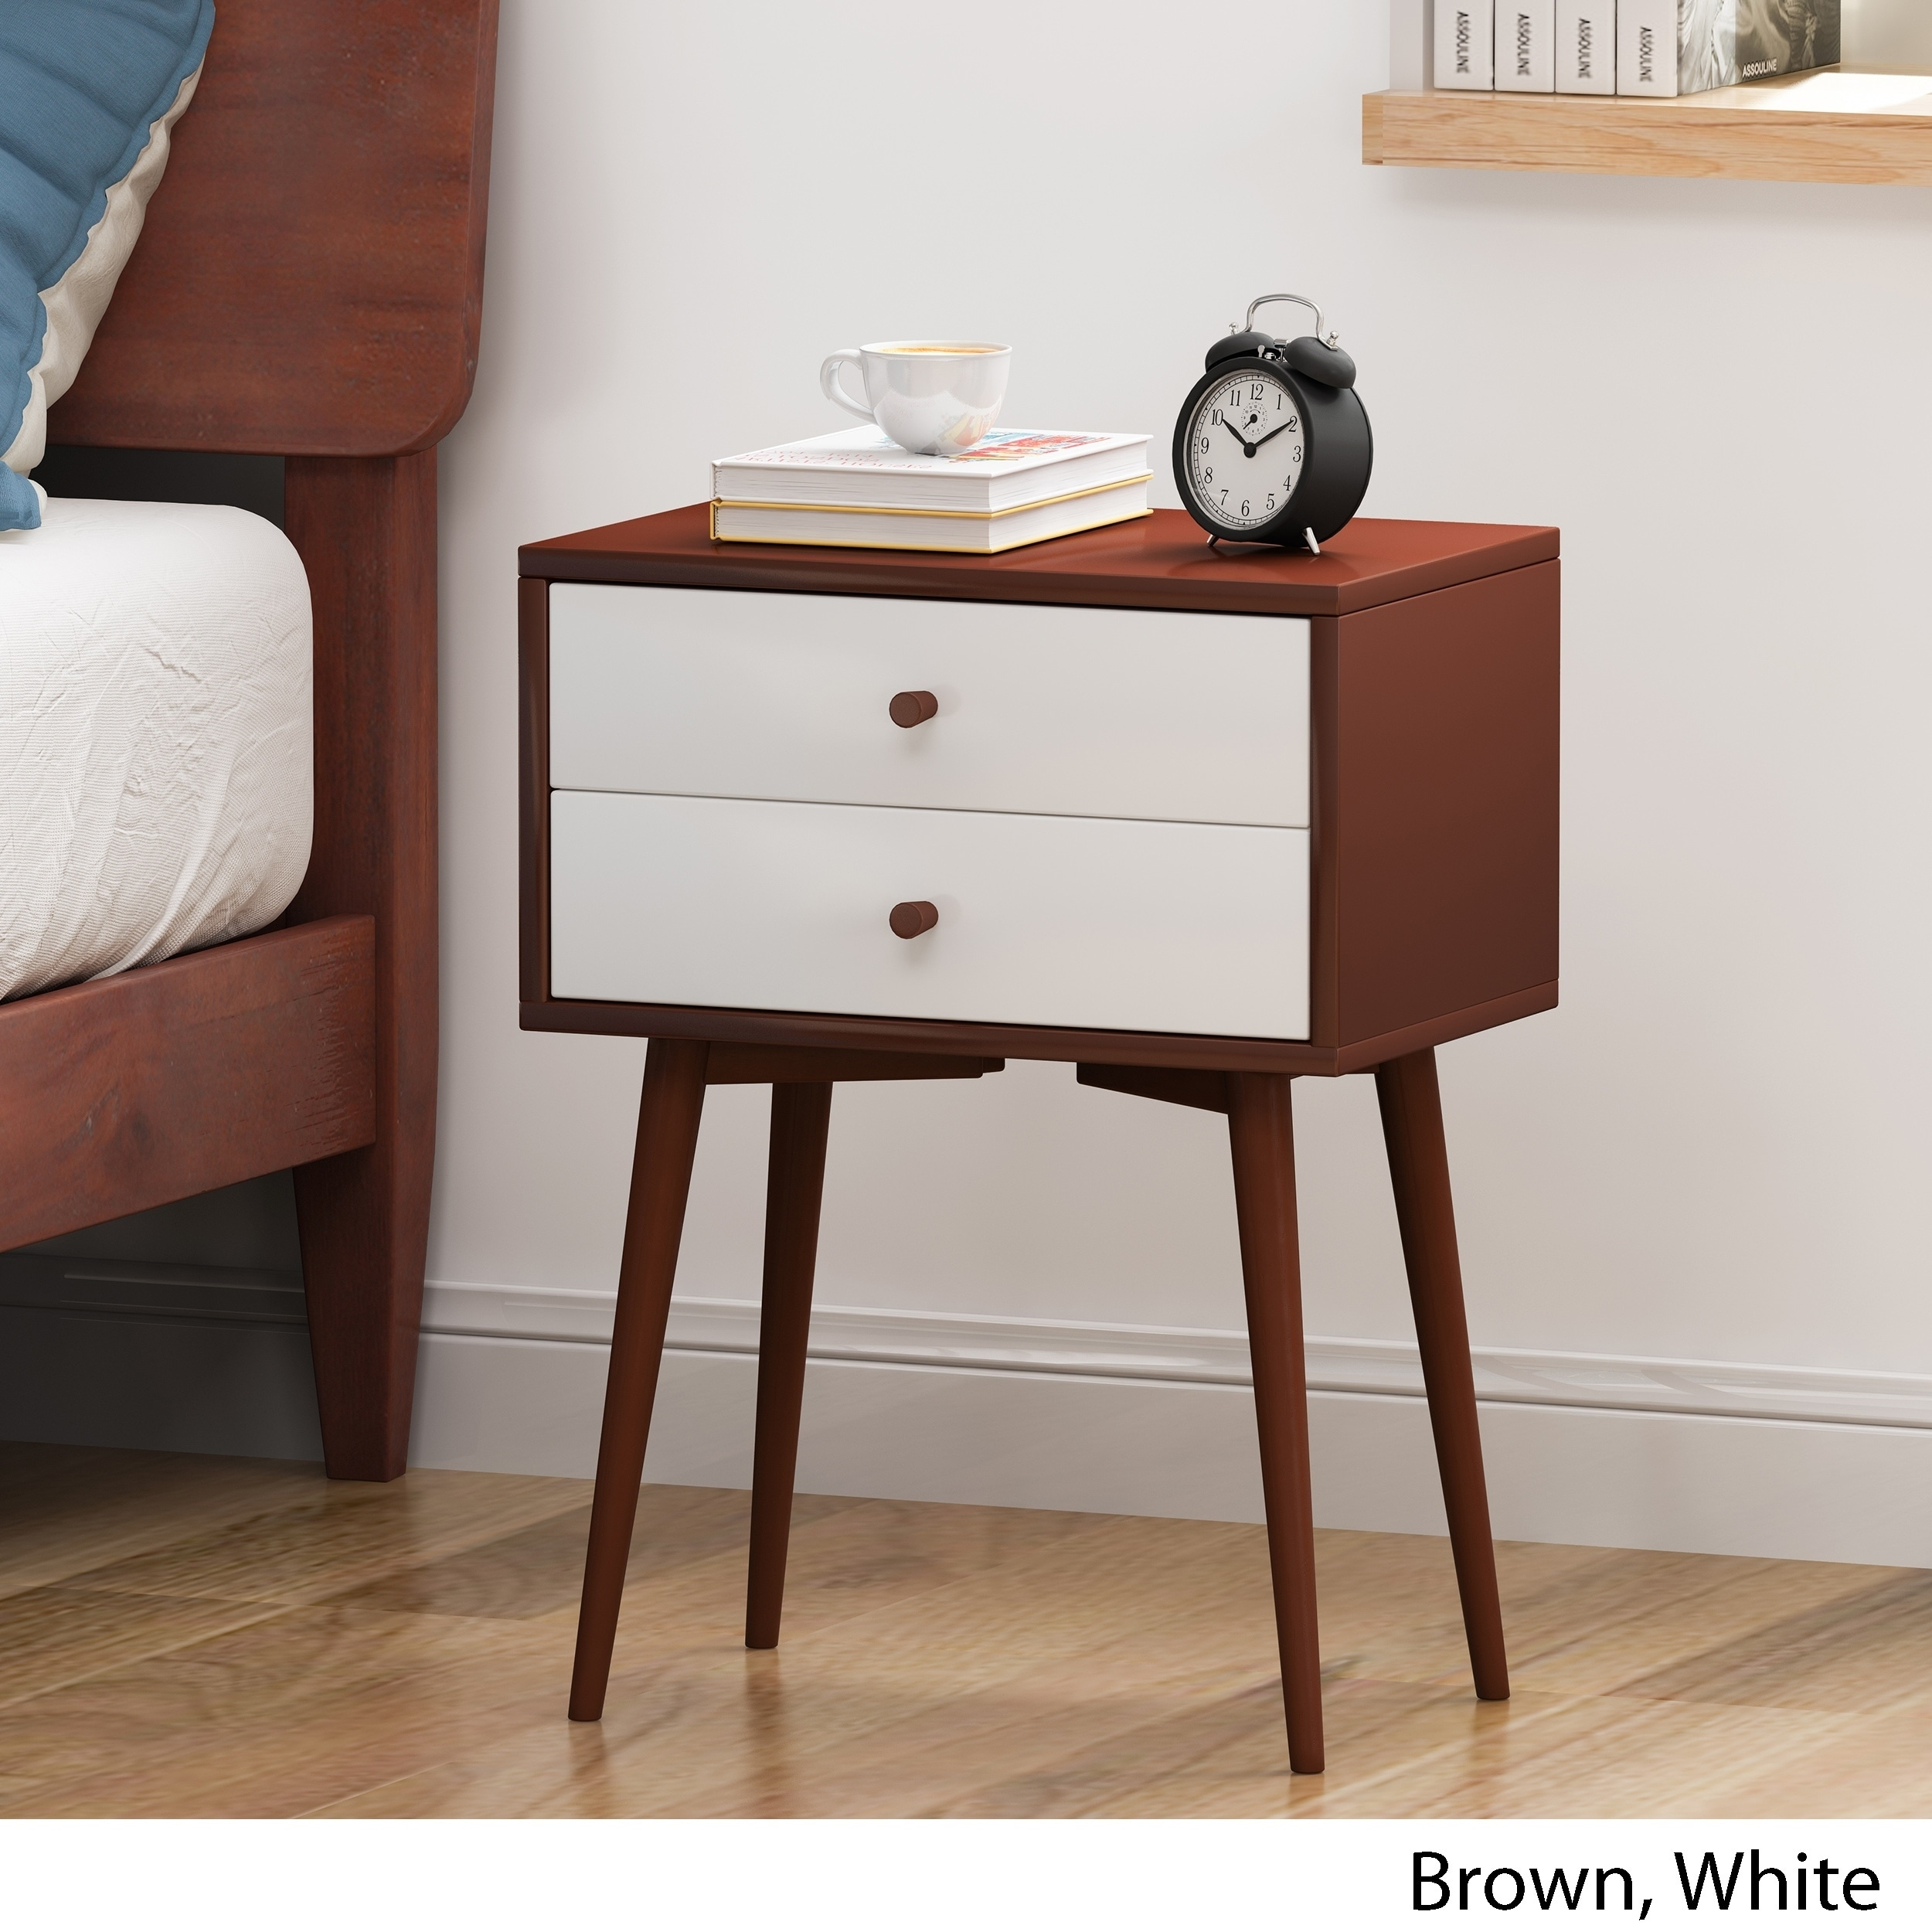 Shop Black Friday Deals On Newcomb Mid Century Modern Side Table By Christopher Knight Home Overstock 28878948